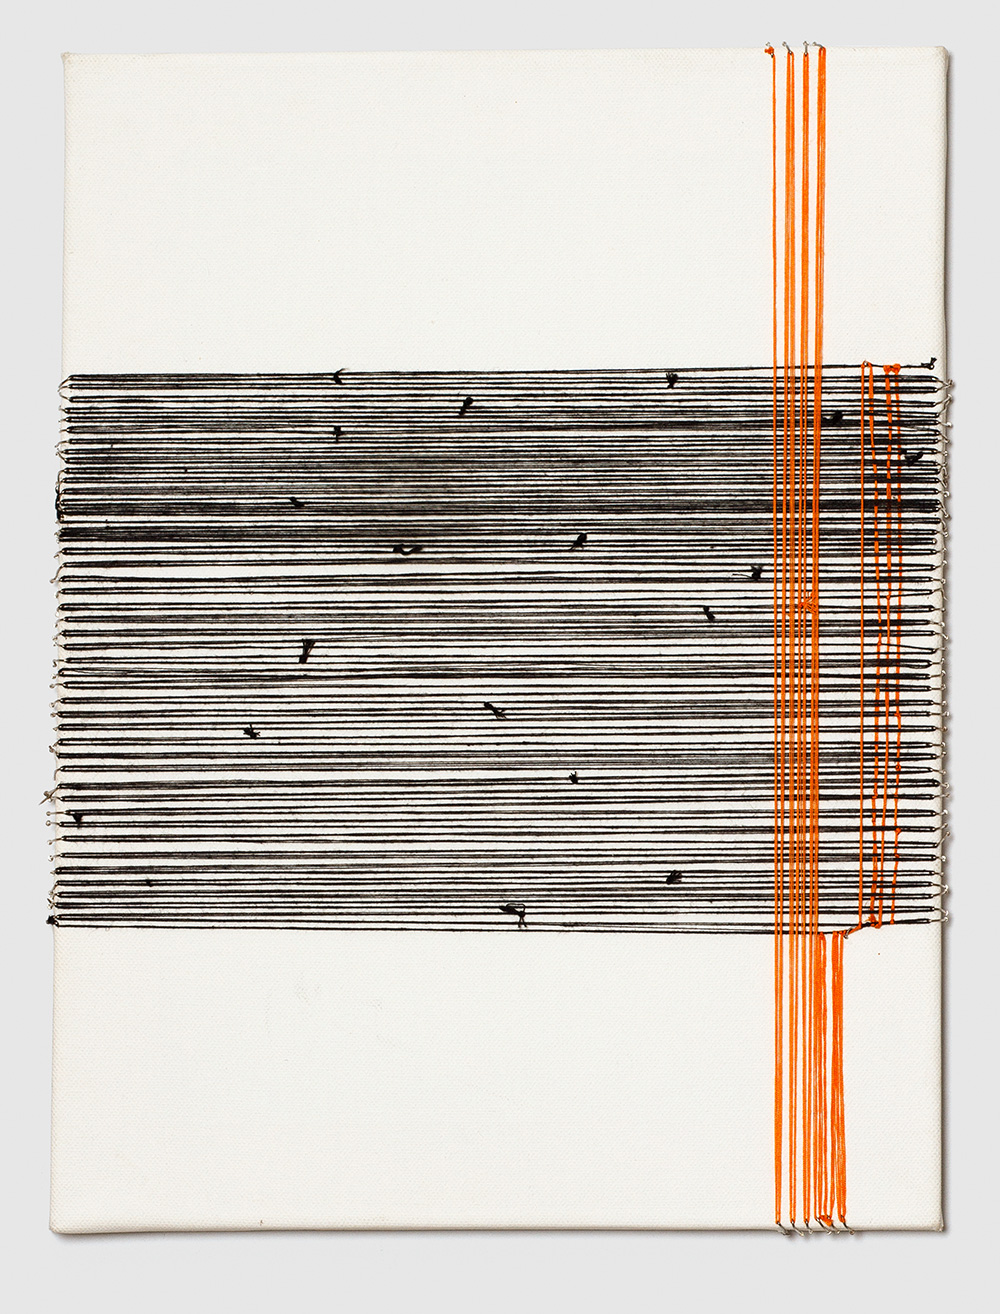 Adia Wahid   No Strings Attached , 2012  Embroidery Thread on Canvas  40cm x 30cm